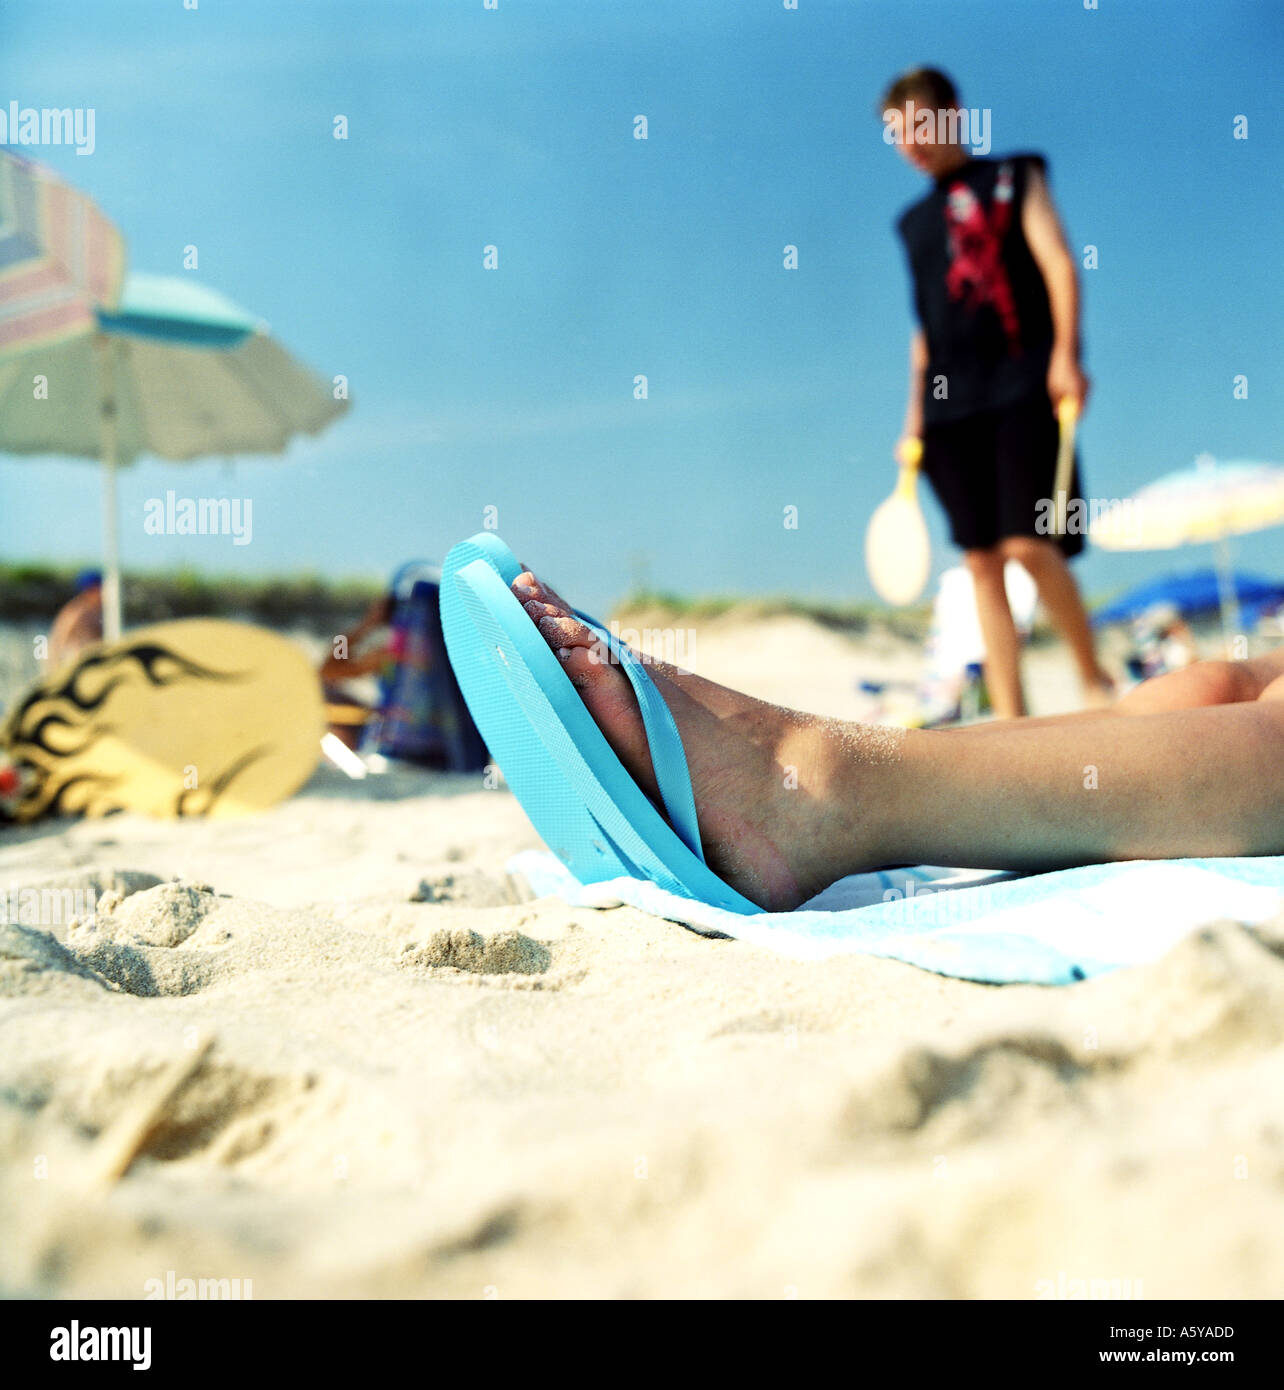 Beach Scene In the background a teenage boy in the front one sees woman s feet in flip flops - Stock Image